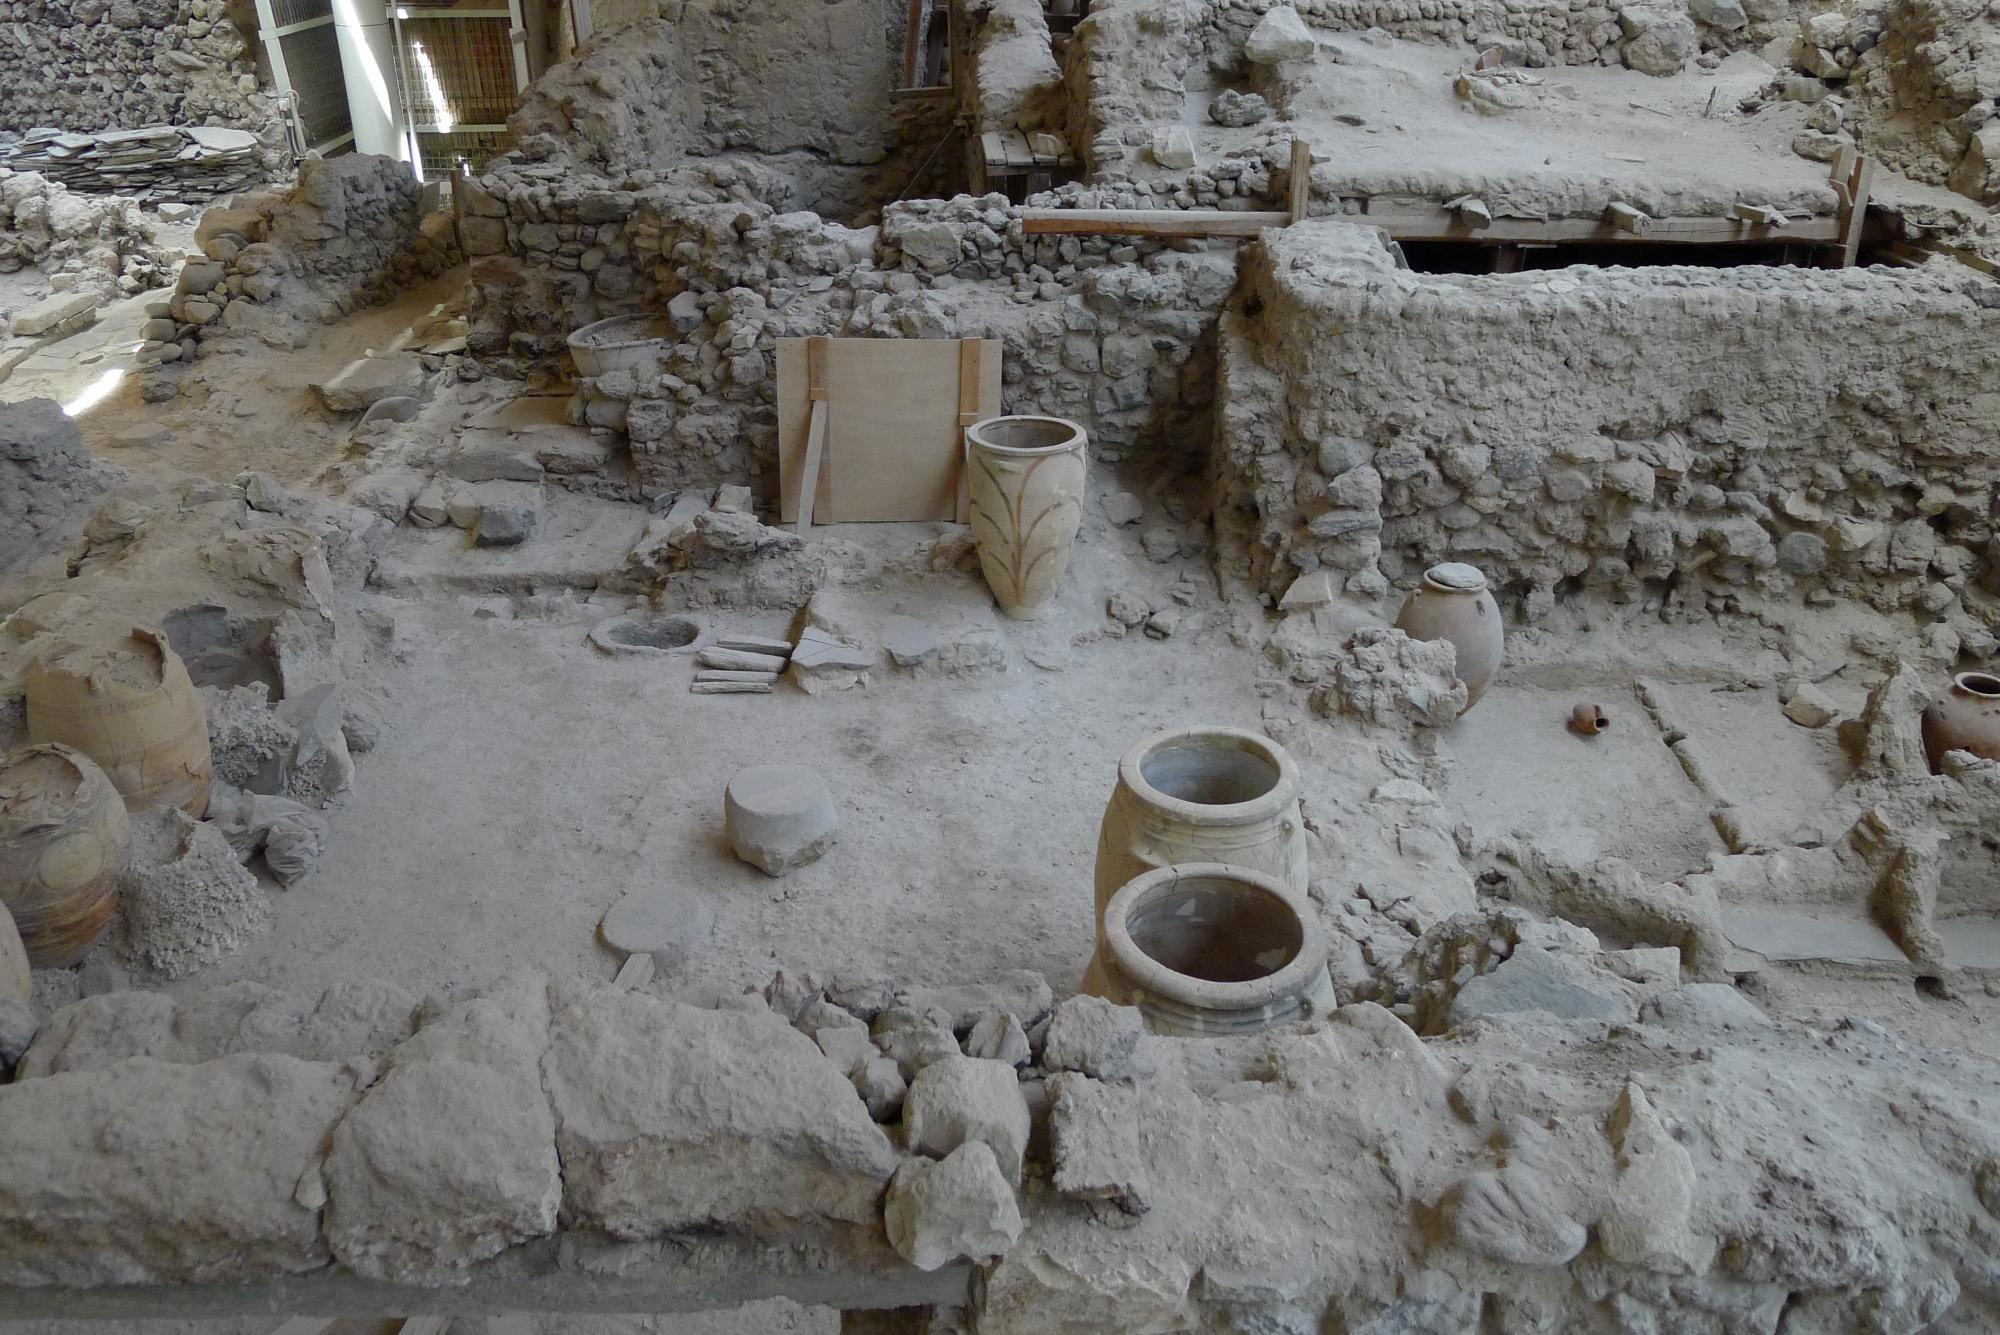 The earthquakes on Akrotiri seemed to happen in a couple of waves. One set did substantial damage to the town. There is evidence people started to repair the damage, but before repairs were complete, another set of quakes hit the town. It appears people a